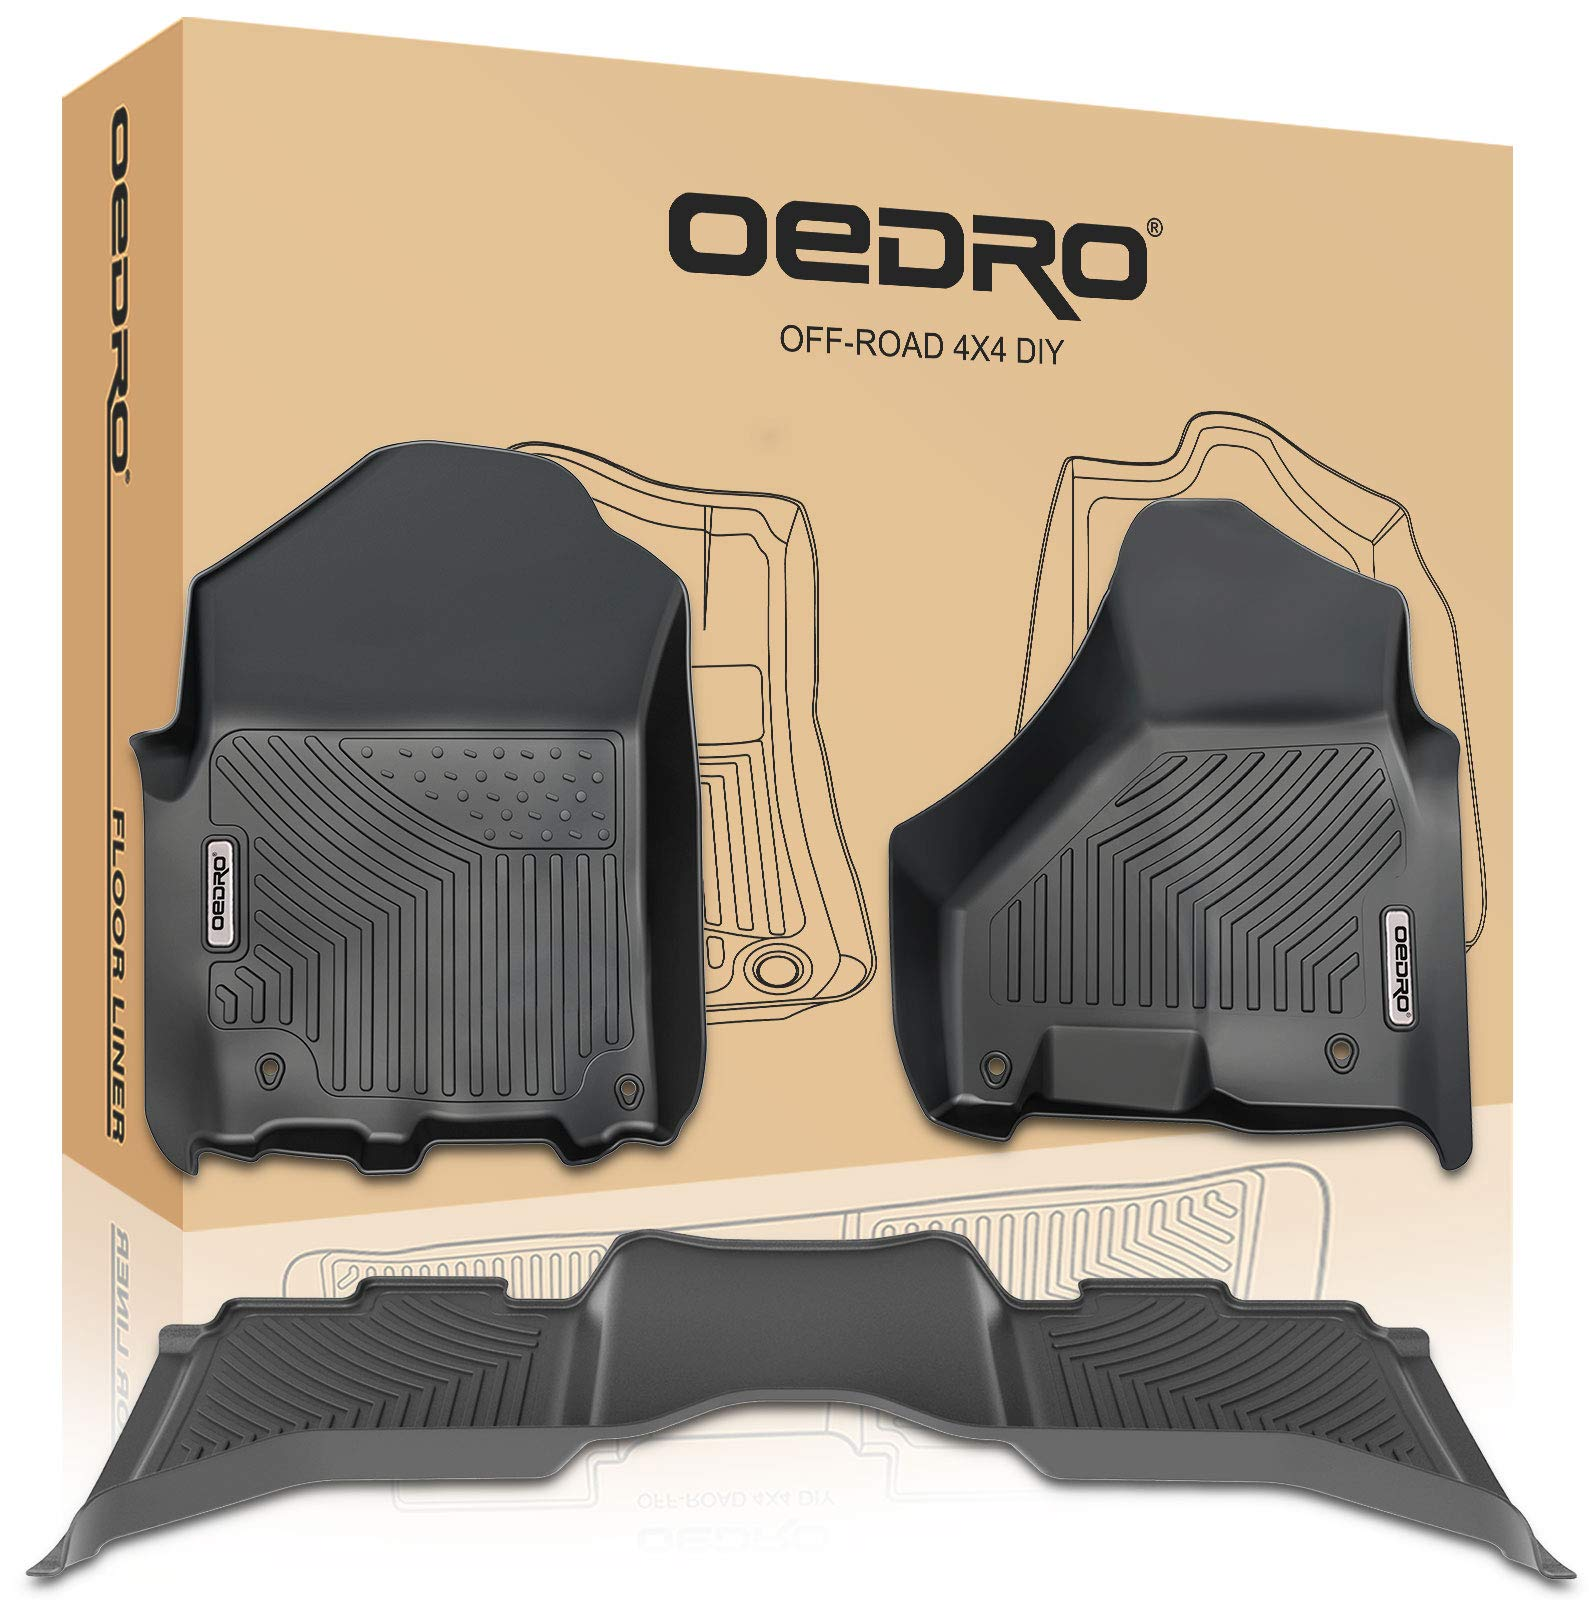 oEdRo Floor Mats Compatible for 2012-2018 Dodge Ram 1500/2500/3500 Crew Cab, Unique Black TPE All-Weather Guard Includes 1st and 2nd Row: Front, Rear, Full Set Liners by oEdRo (Image #1)